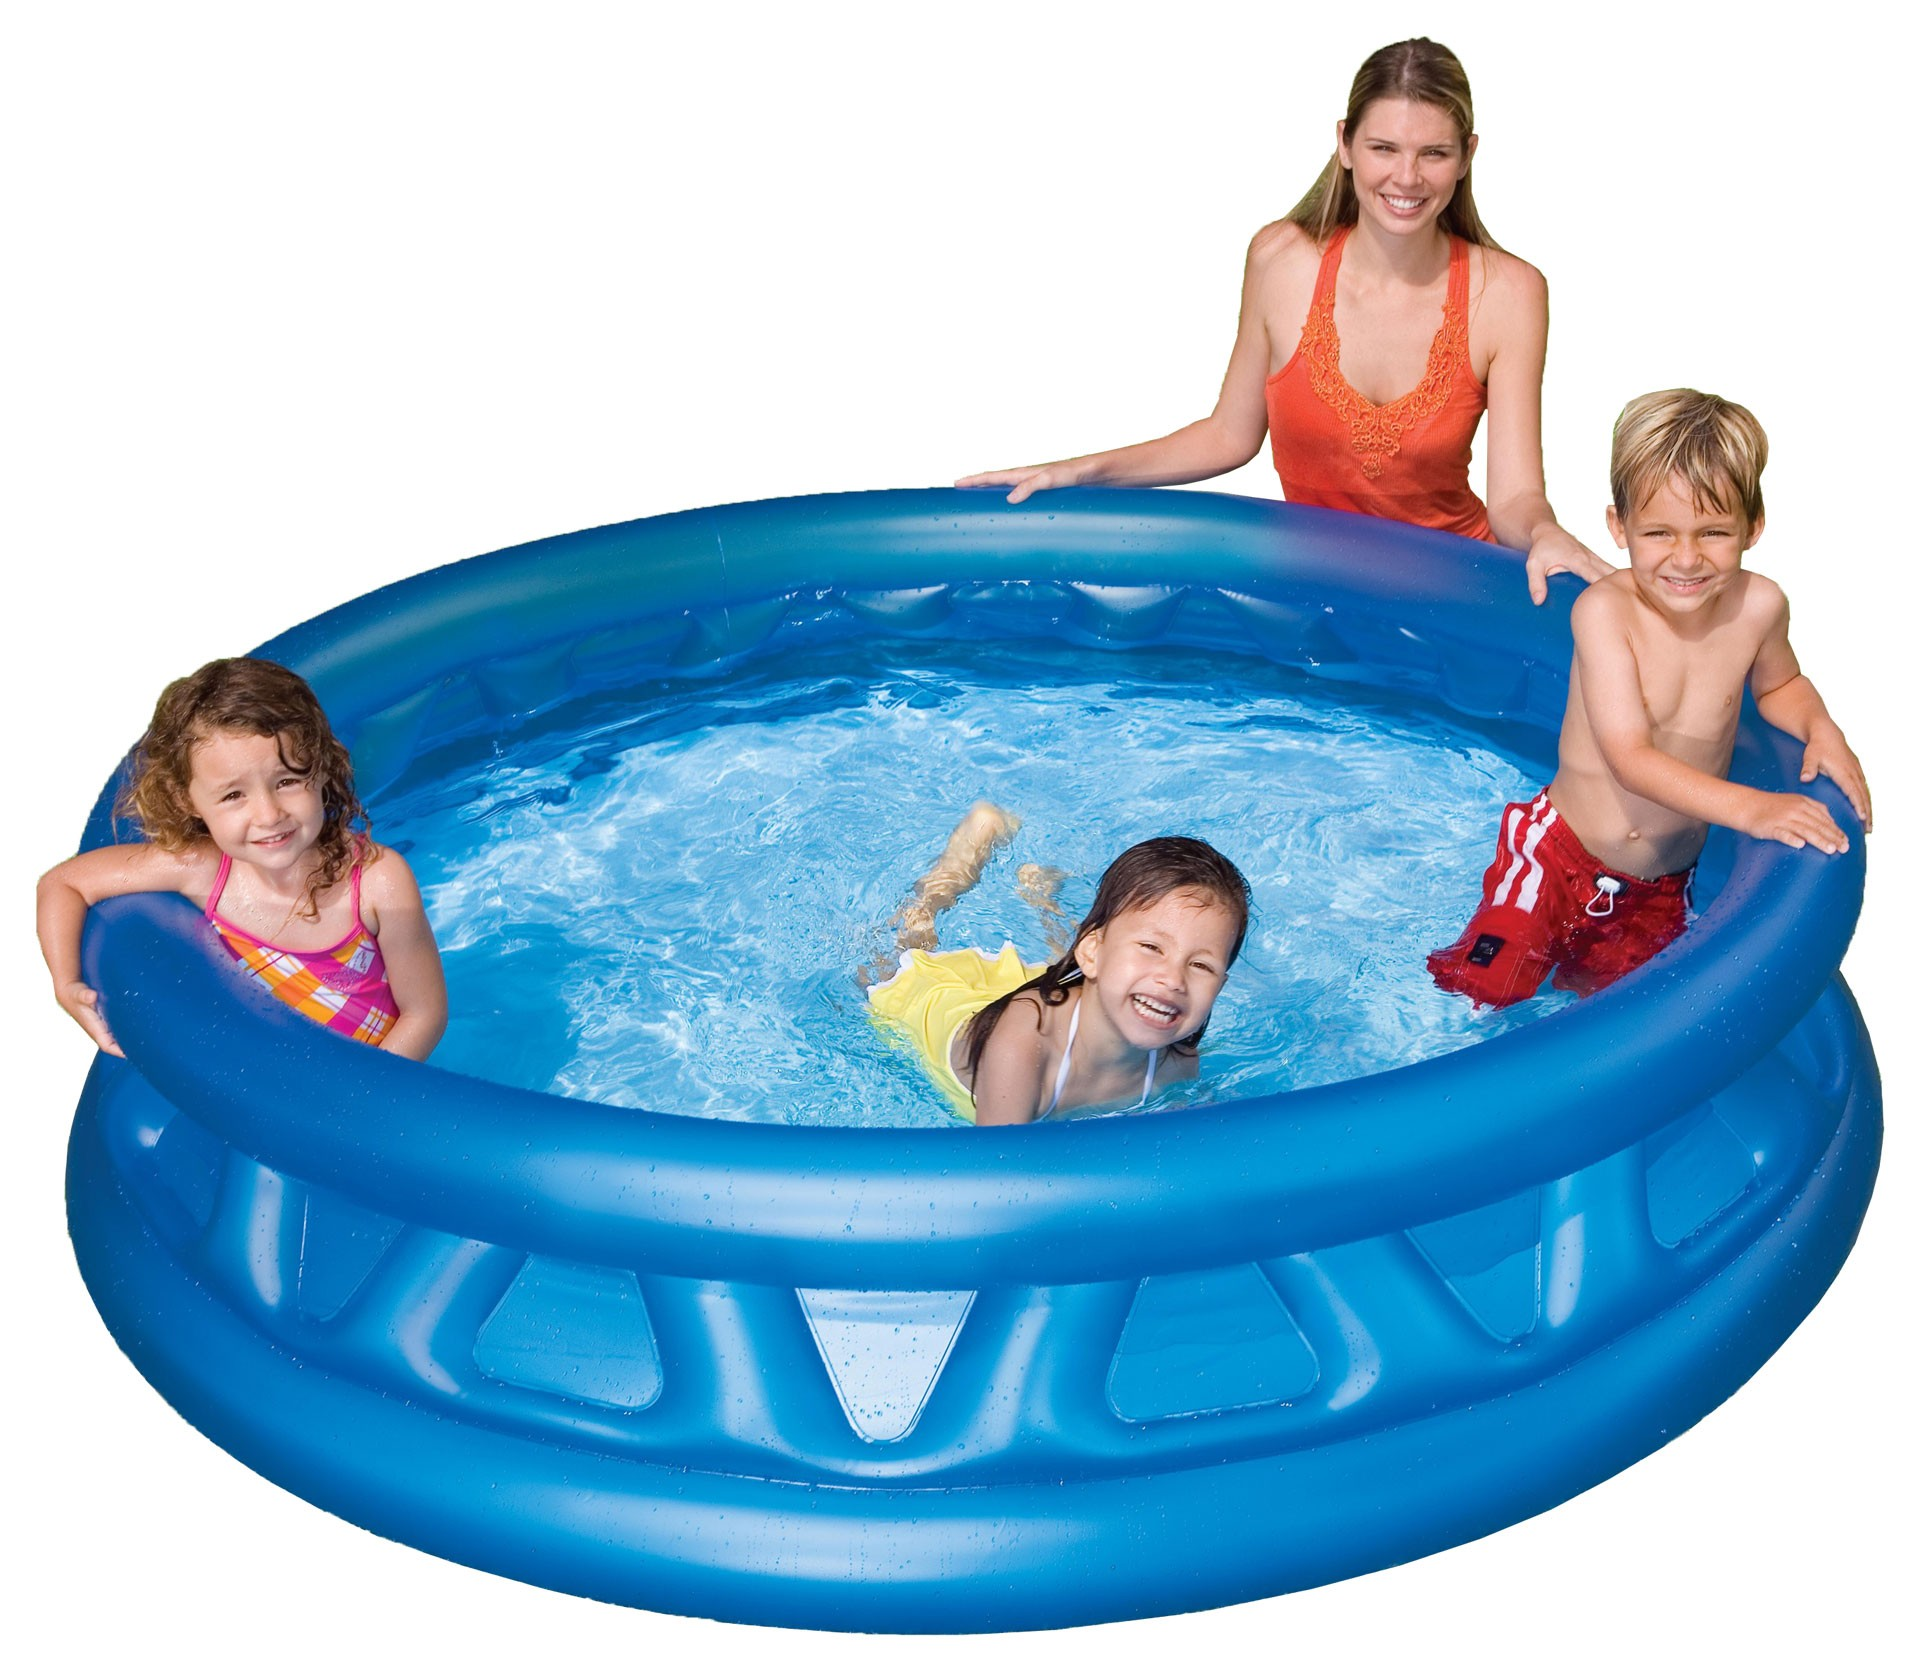 Children's Inflatable Round Swimming Pool Summer Garden Leisure Children 188x46 Cm, 790 L, Intex With Padded Walls, From 3 Years, Item No. 58431np